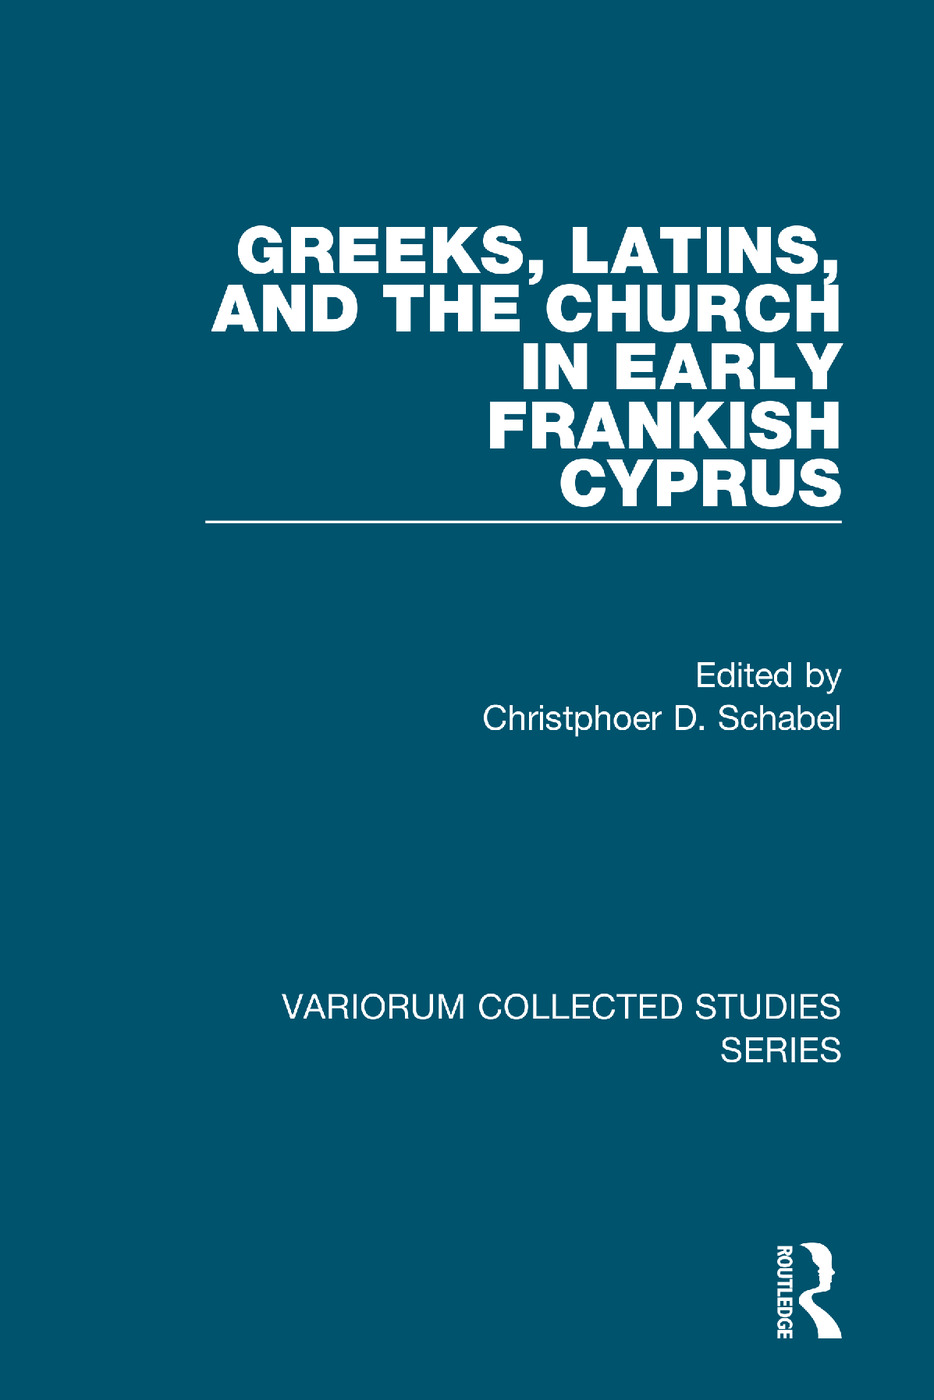 Greeks, Latins, and the Church in Early Frankish Cyprus: 1st Edition (Hardback) book cover